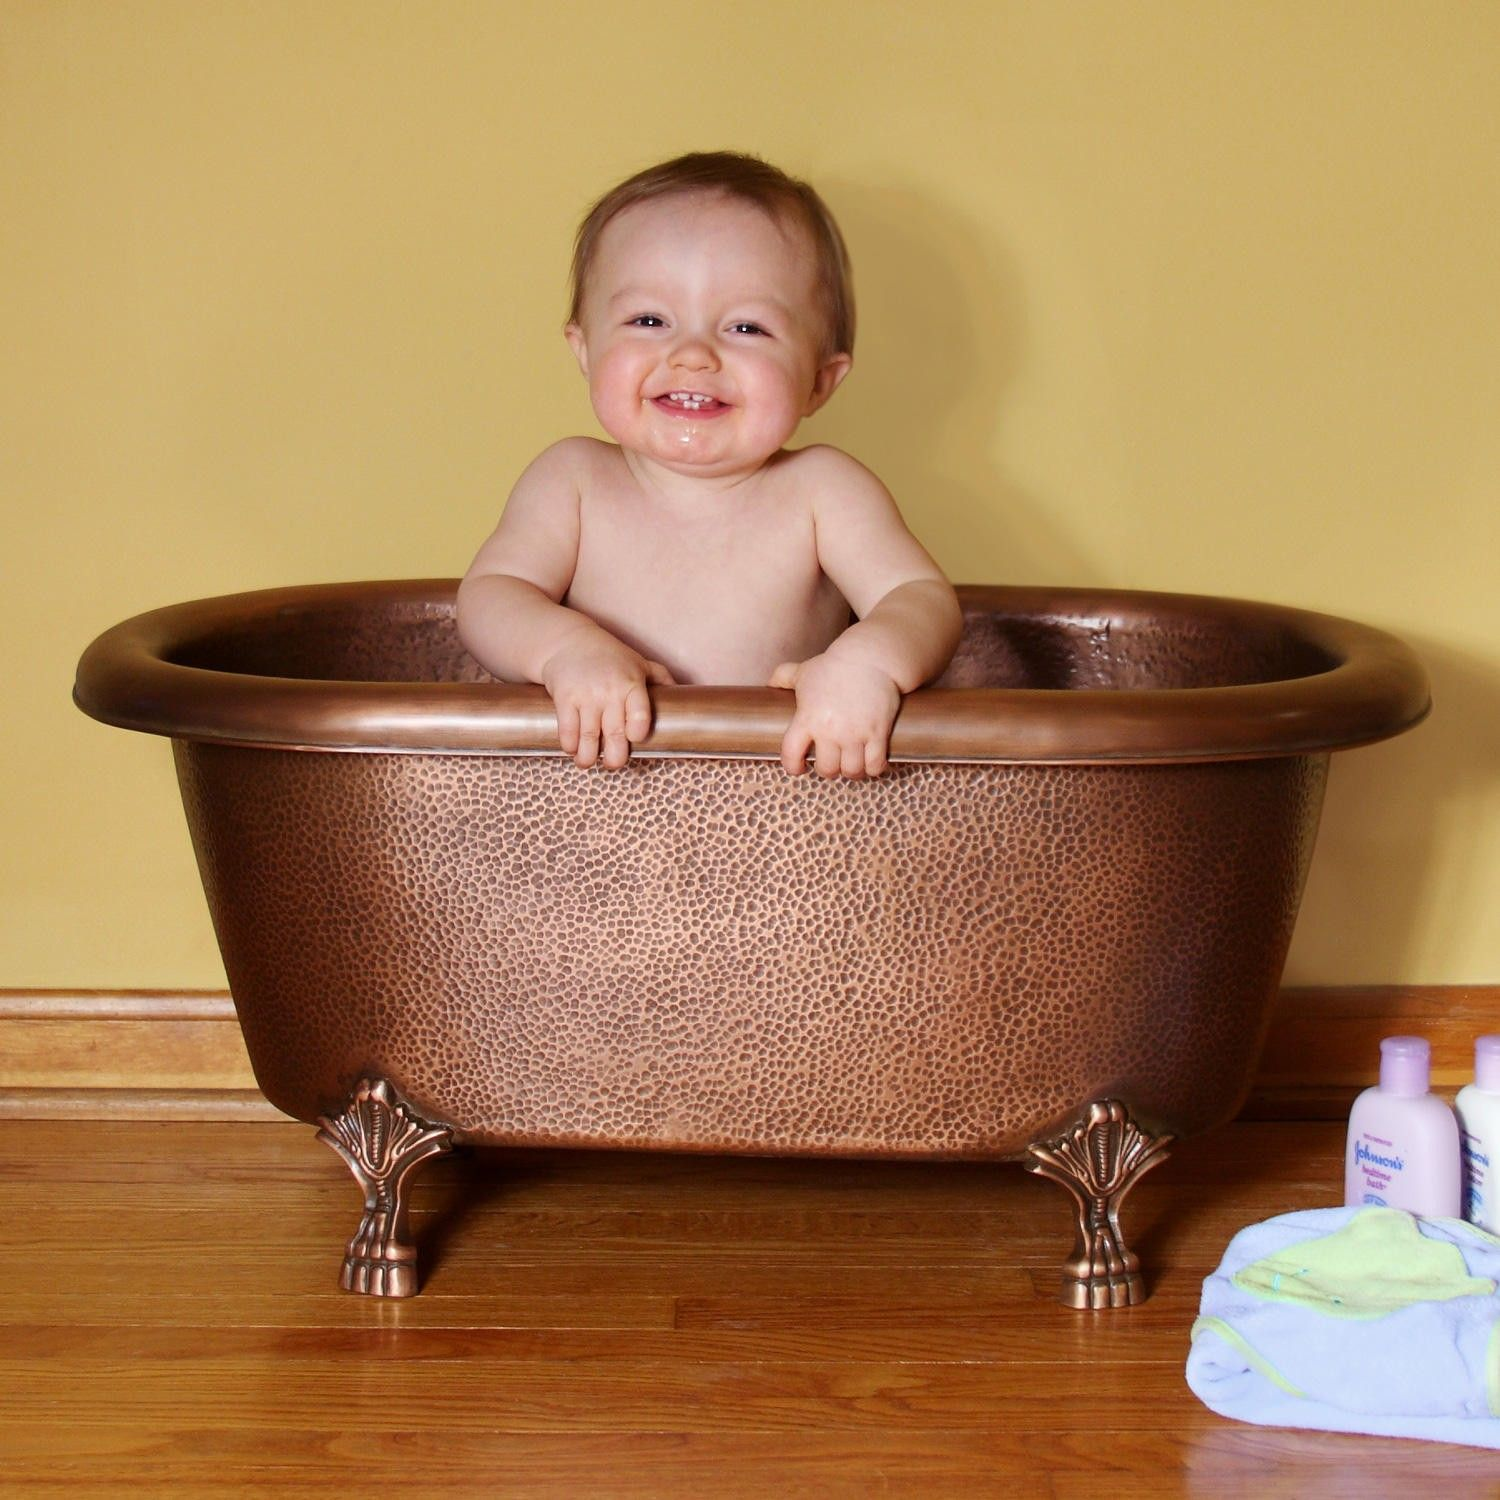 Baby Hammered Copper Clawfoot Tub